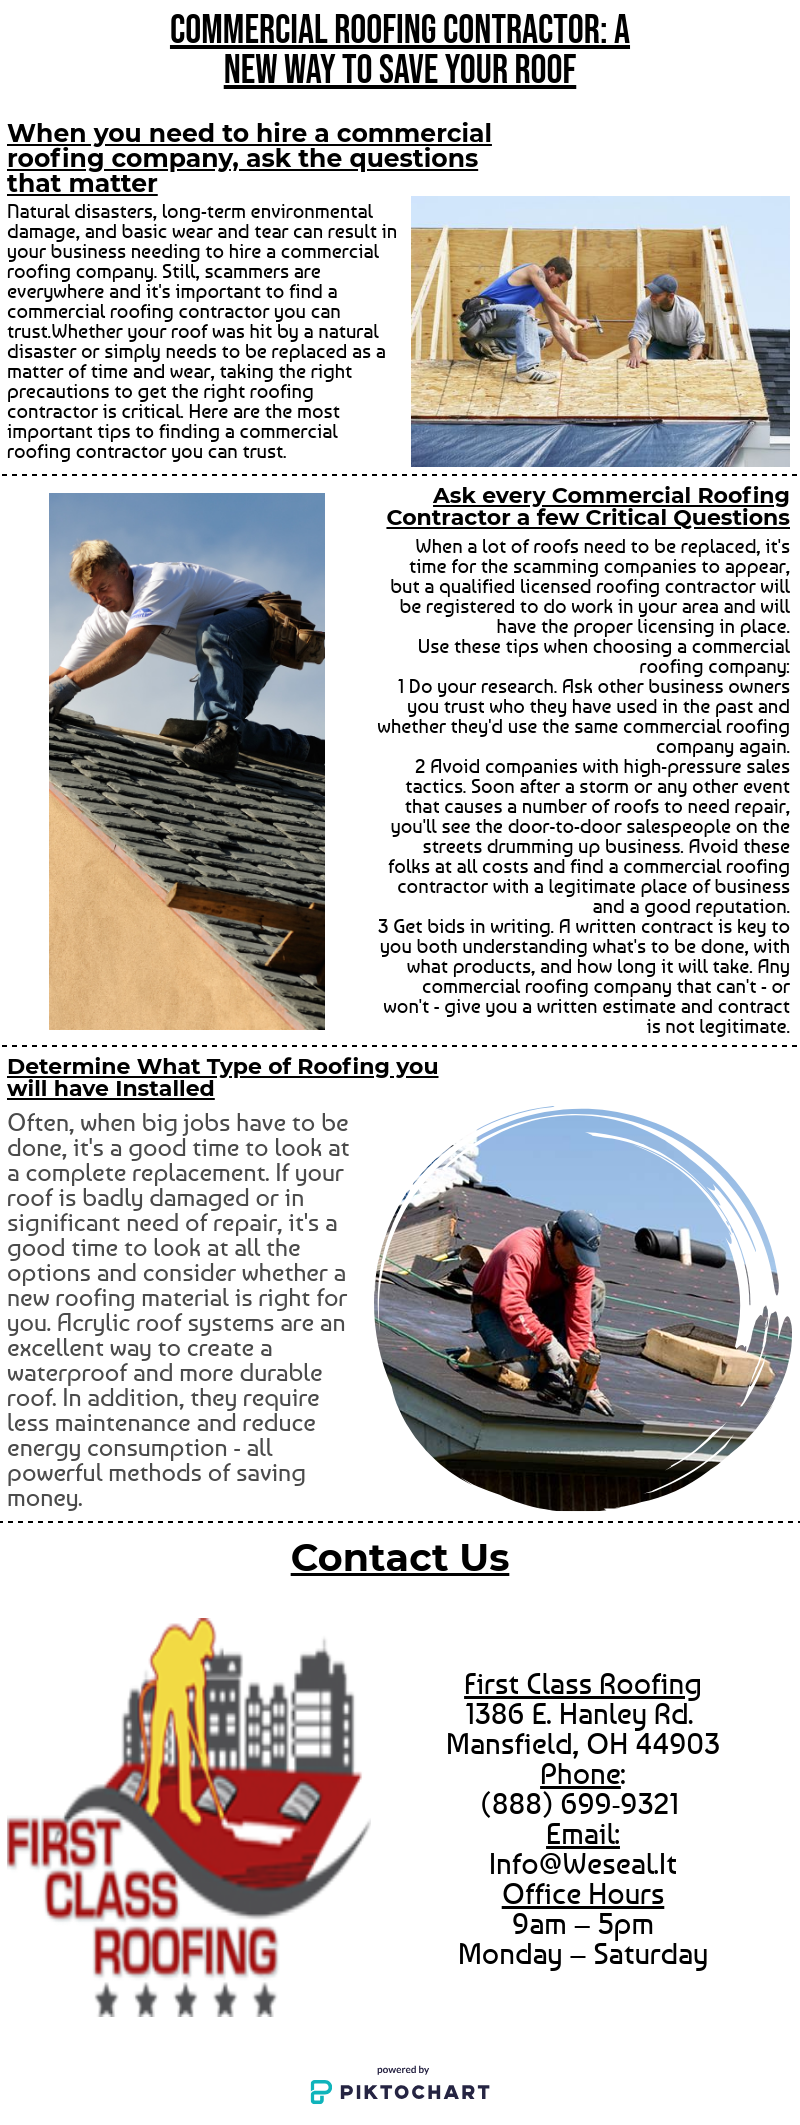 Pin On Commercial Roofing Contractor